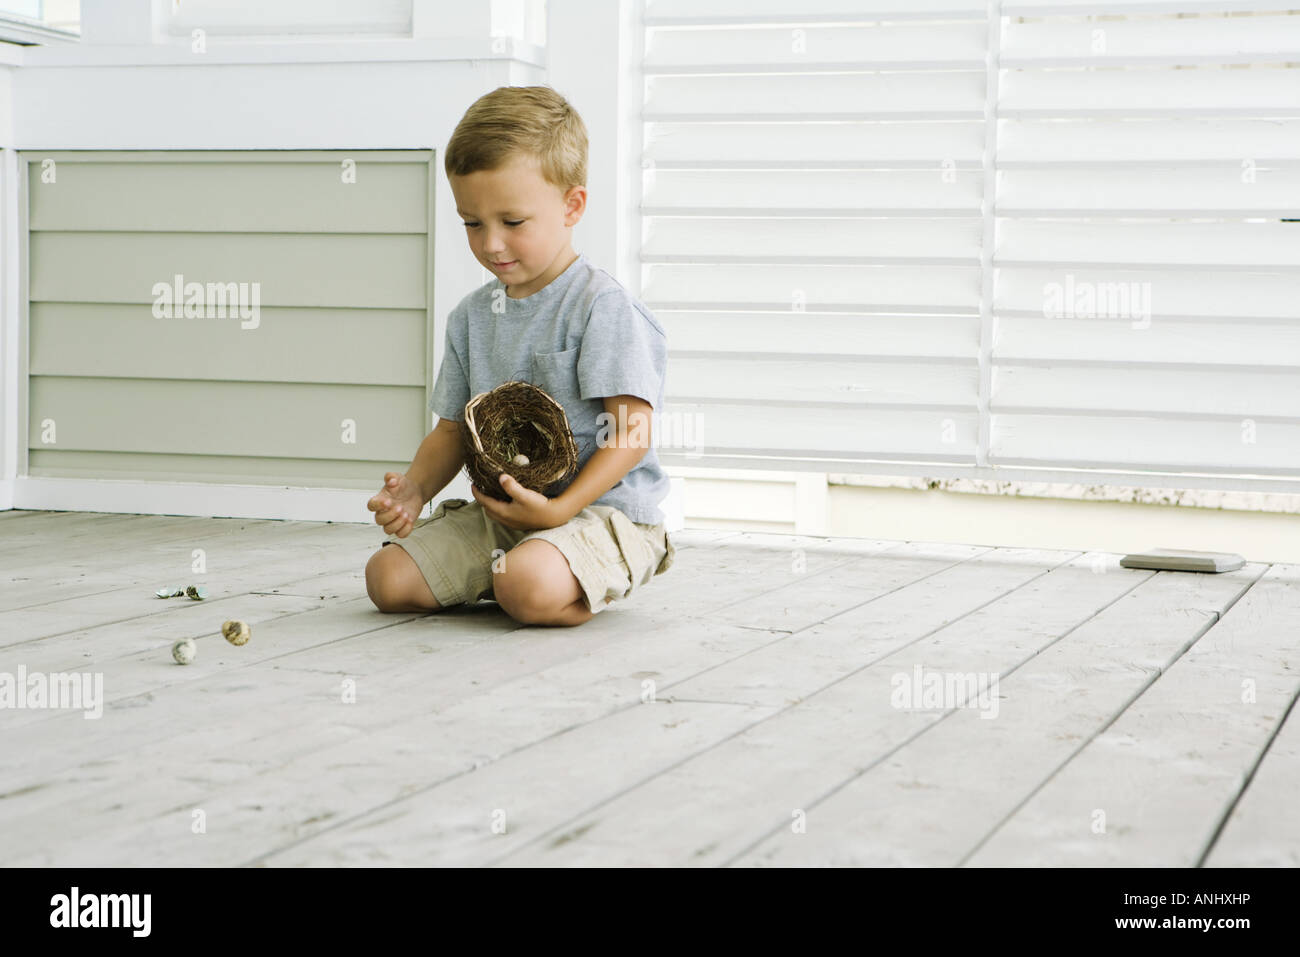 Boy kneeling on the ground, spilling eggs out of bird's nest - Stock Image